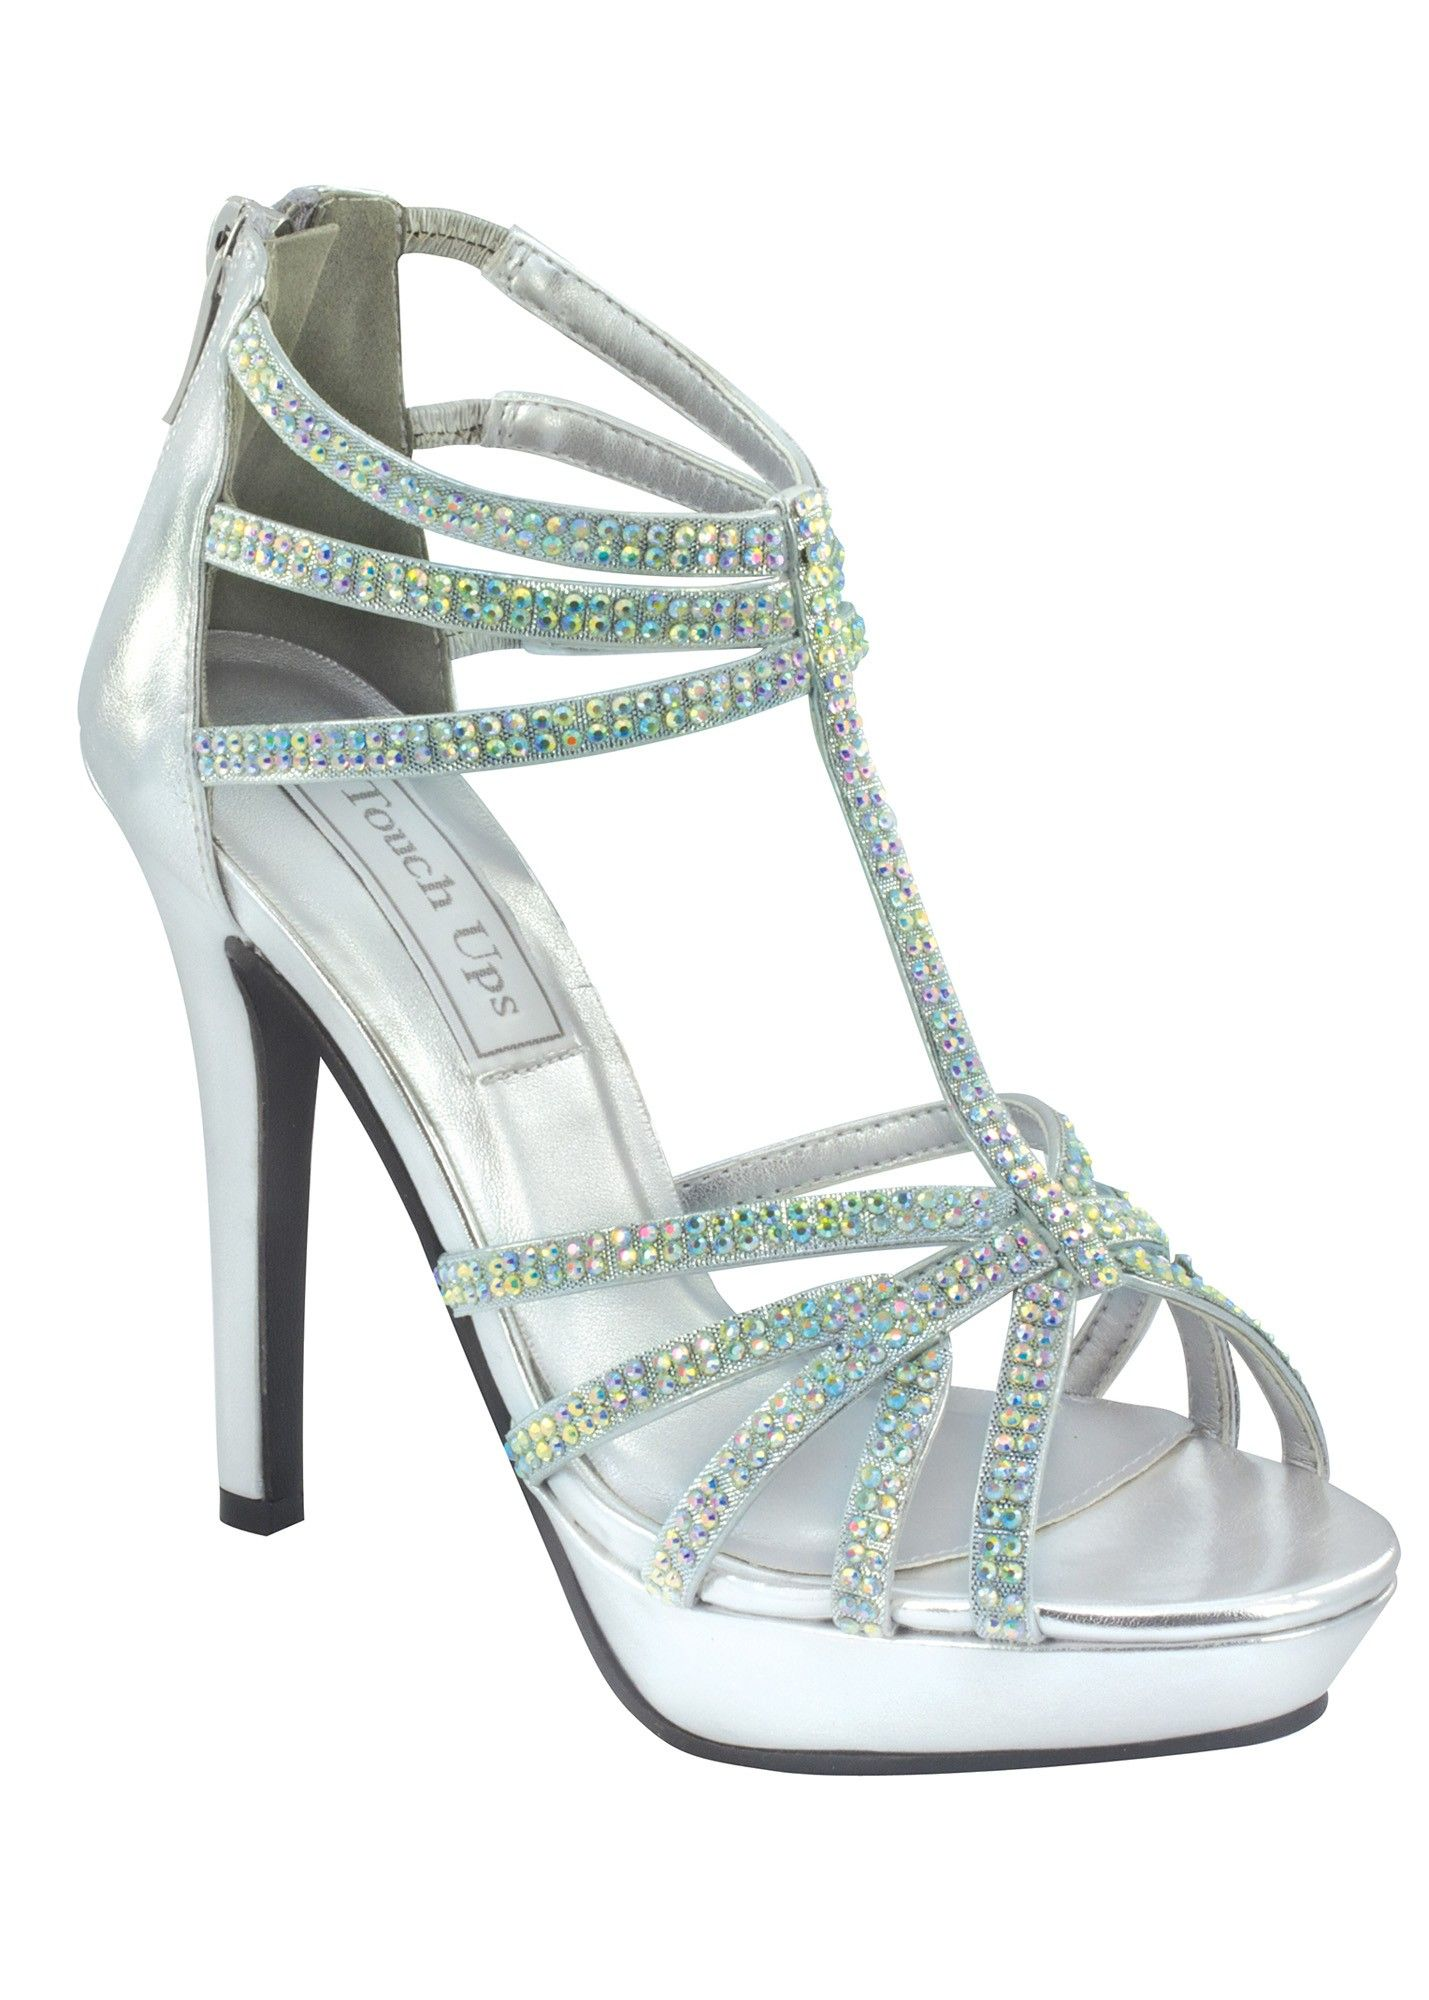 Silver Sandal Heels For Prom